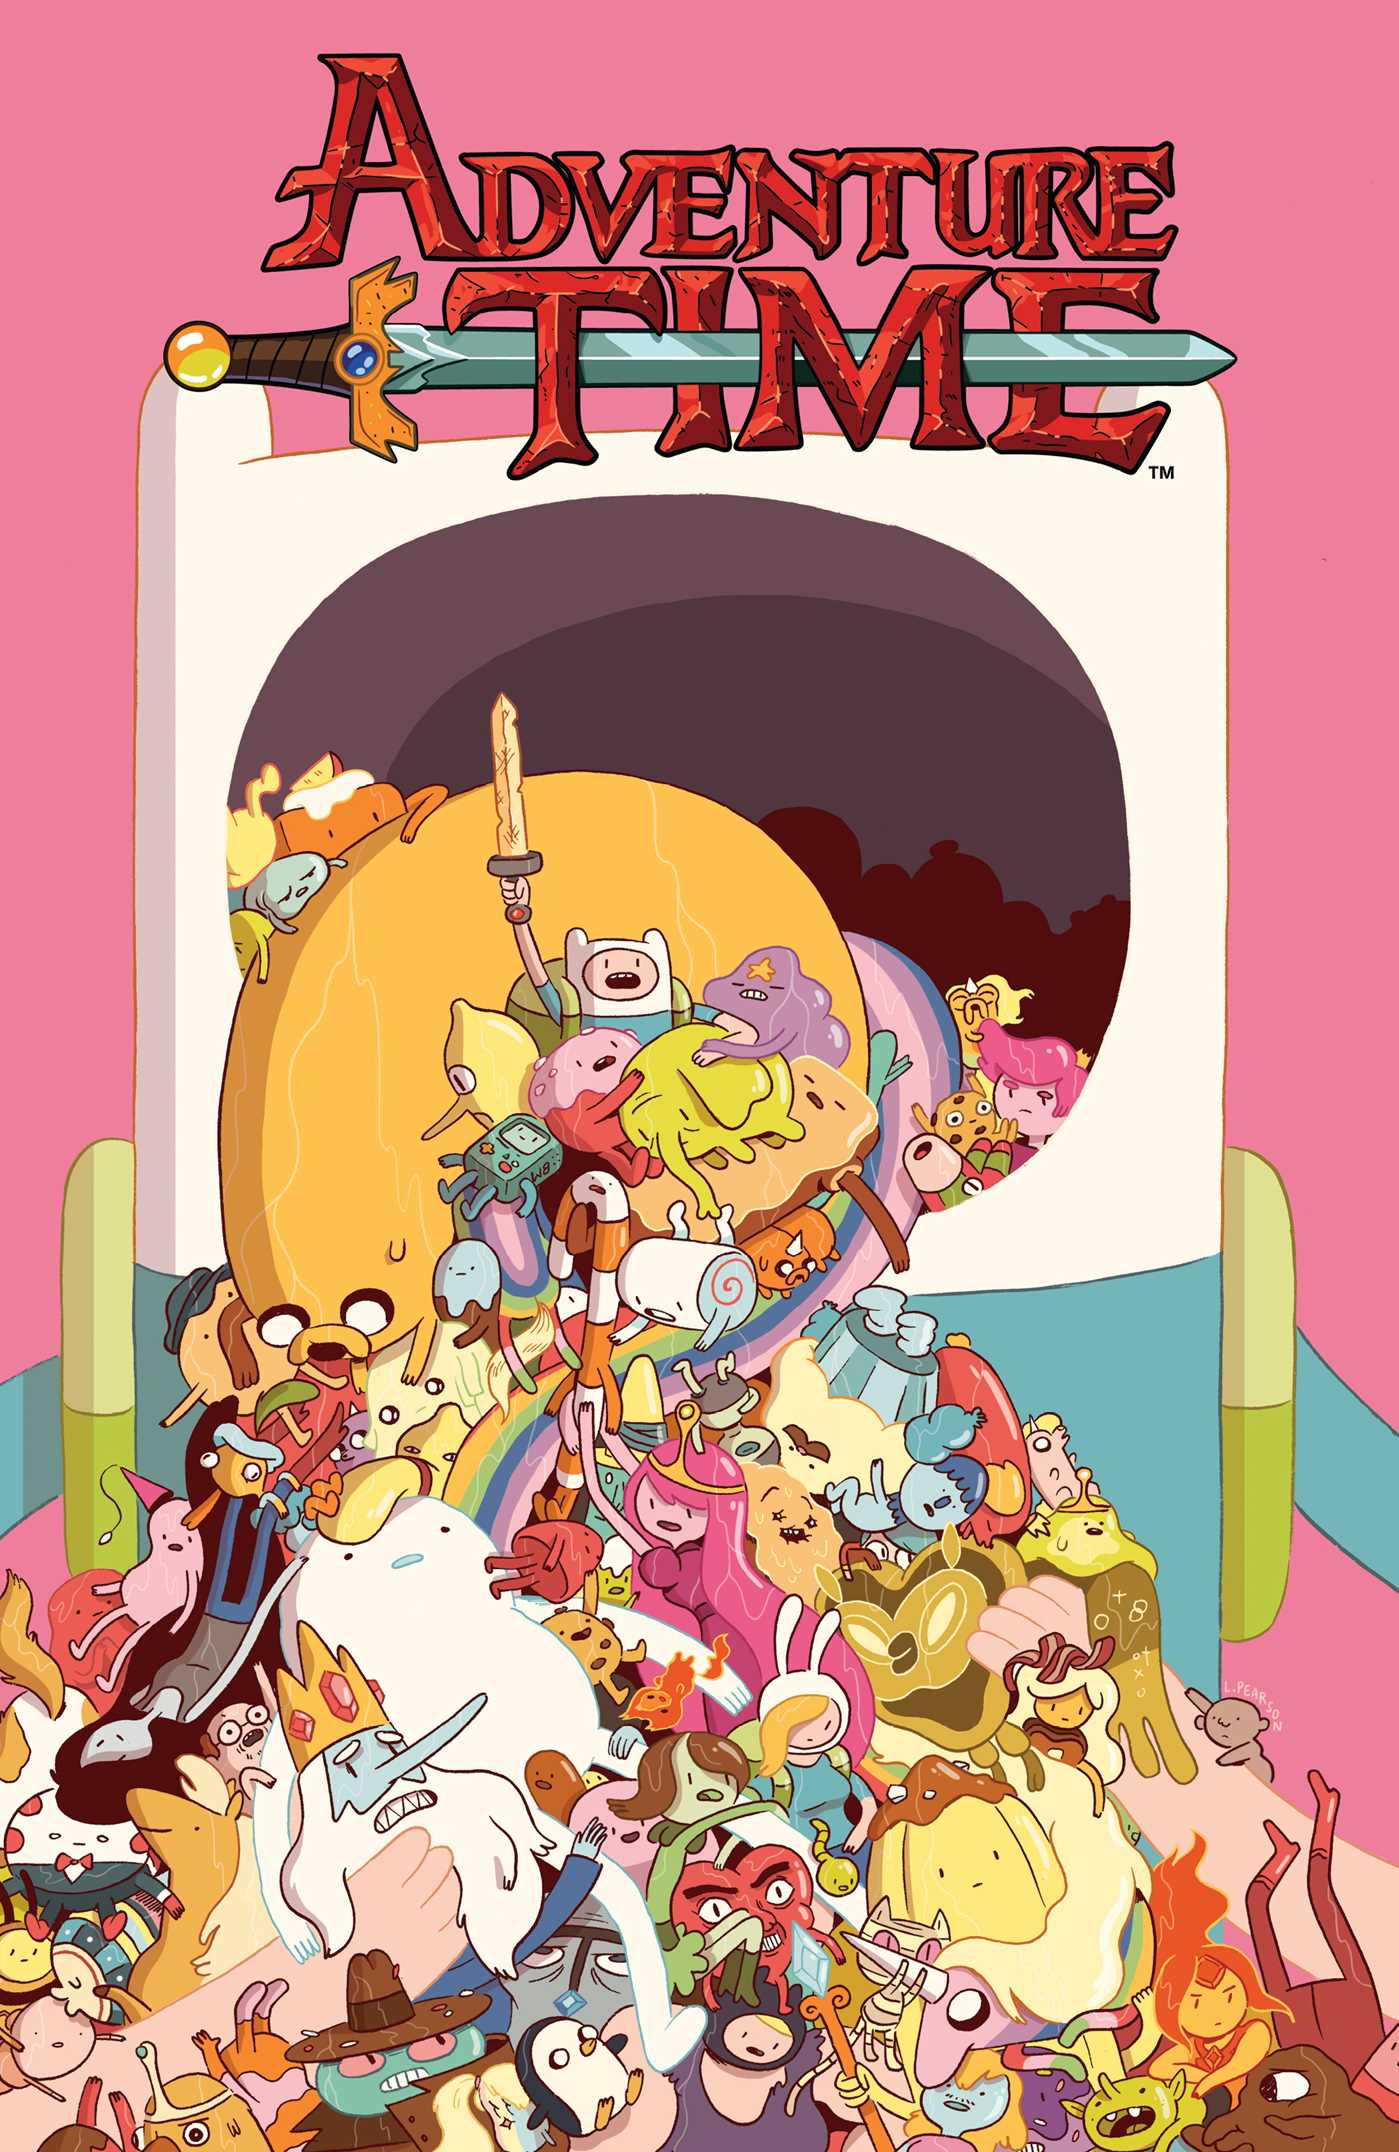 Adventure-time-vol-6-9781608864829_hr